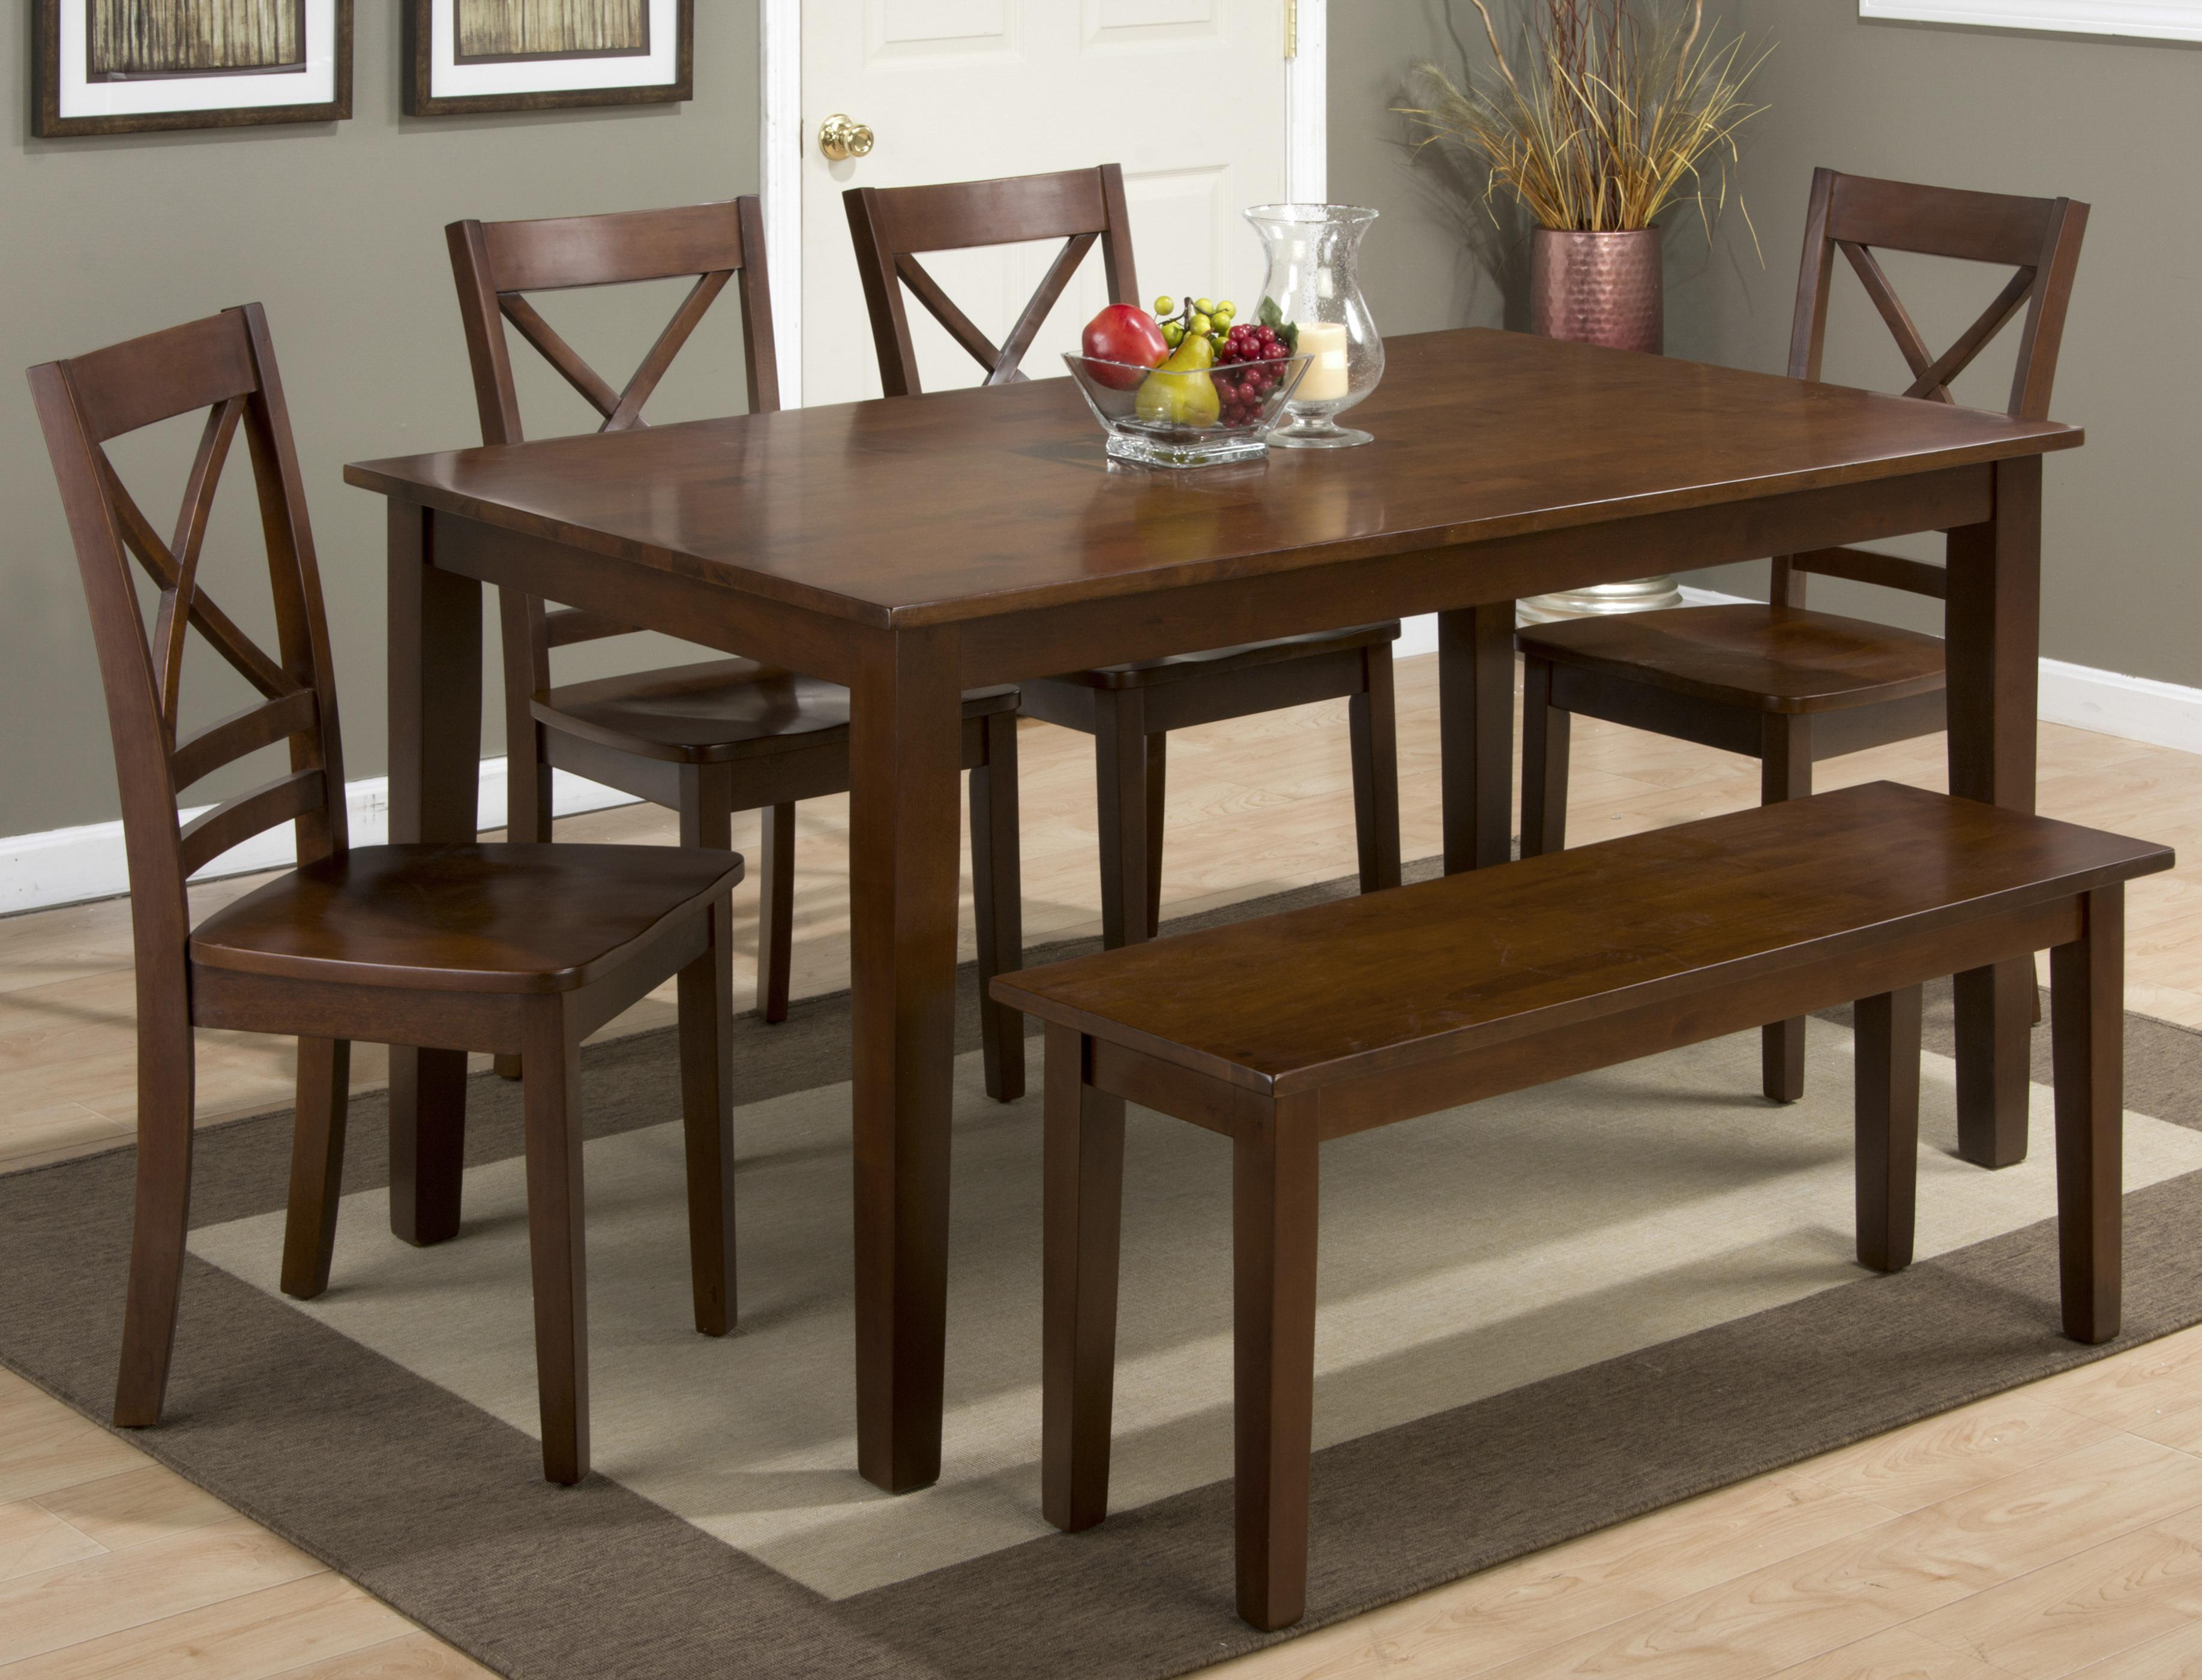 Jofran 3x3x3: Caramel Rectangle Dining Table Set With Bench   Item Number:  452